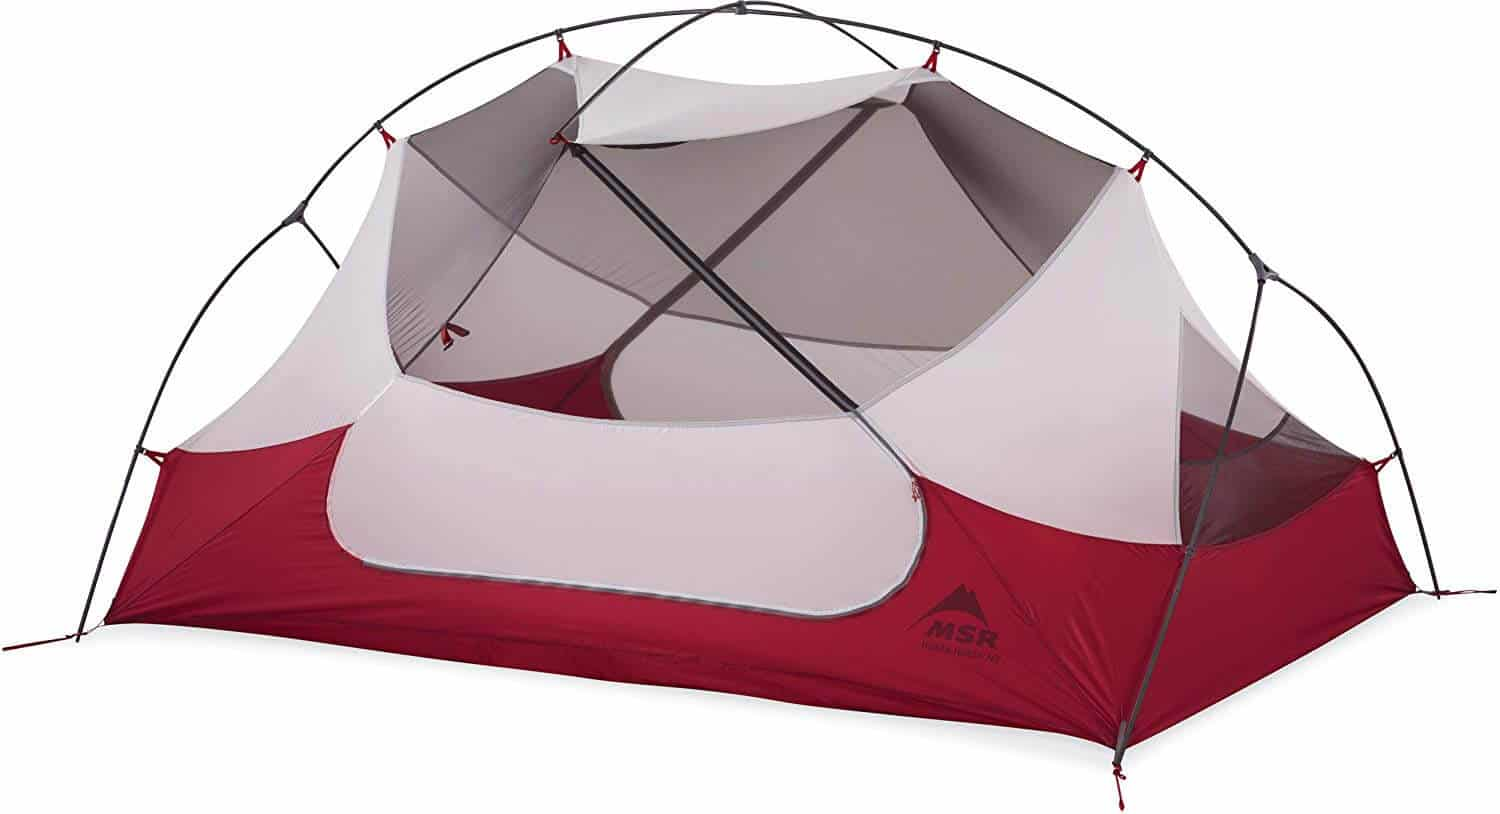 MSR Hubba NX 2-Person Lightweight Backpacking Tent